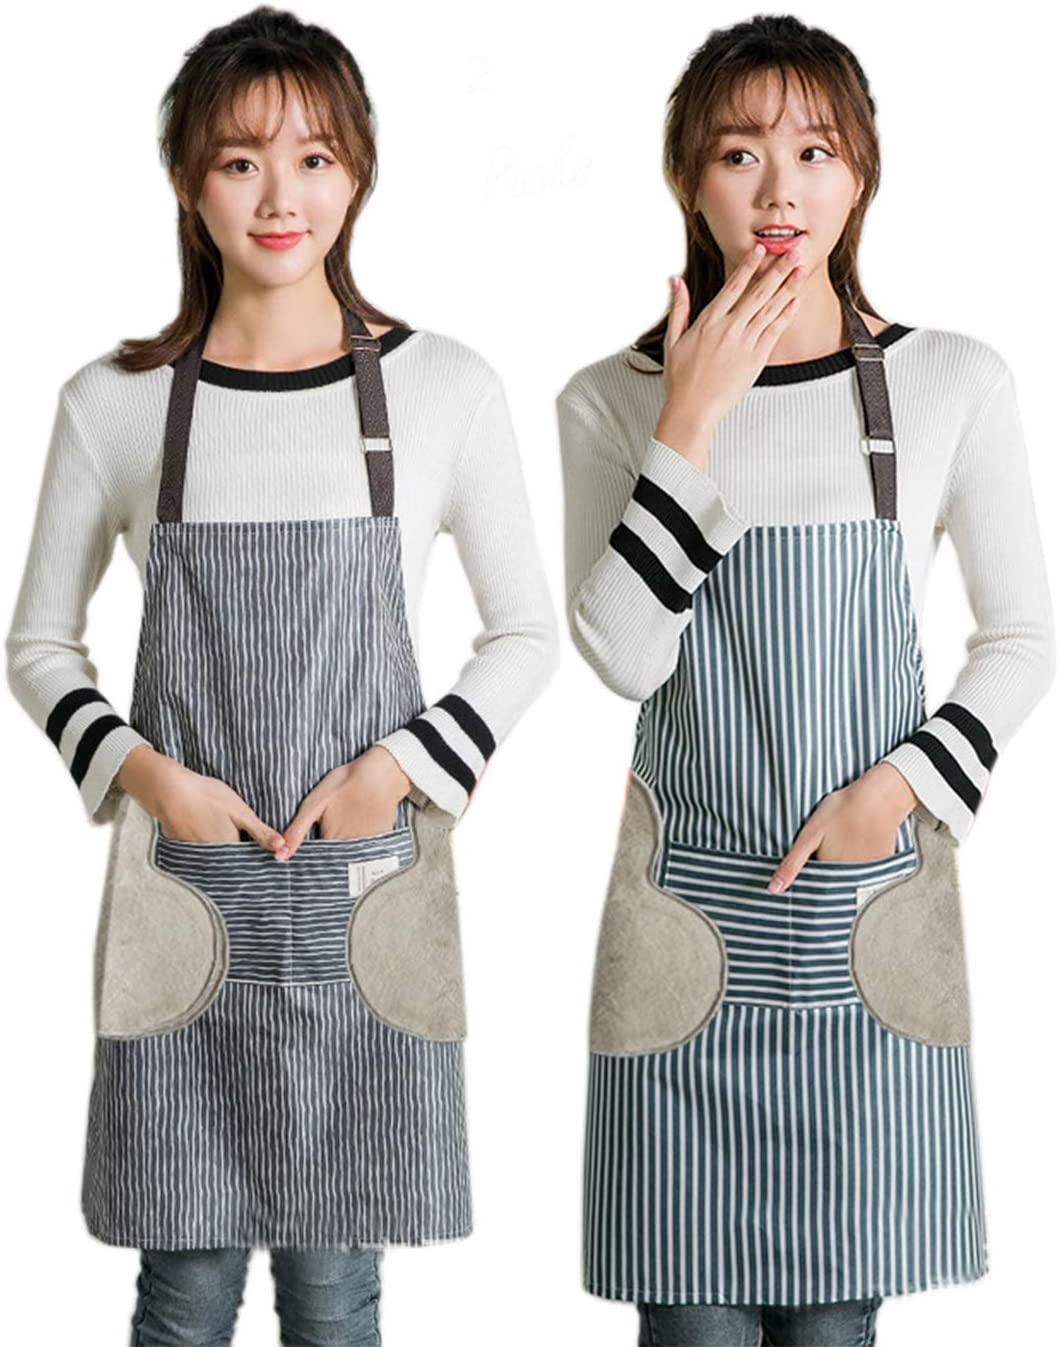 Oxford Adjustable Apron with Pockets Waterproof Aprons with towels Bib Cooking Aprons for Women Men,Gray&Blue stripe